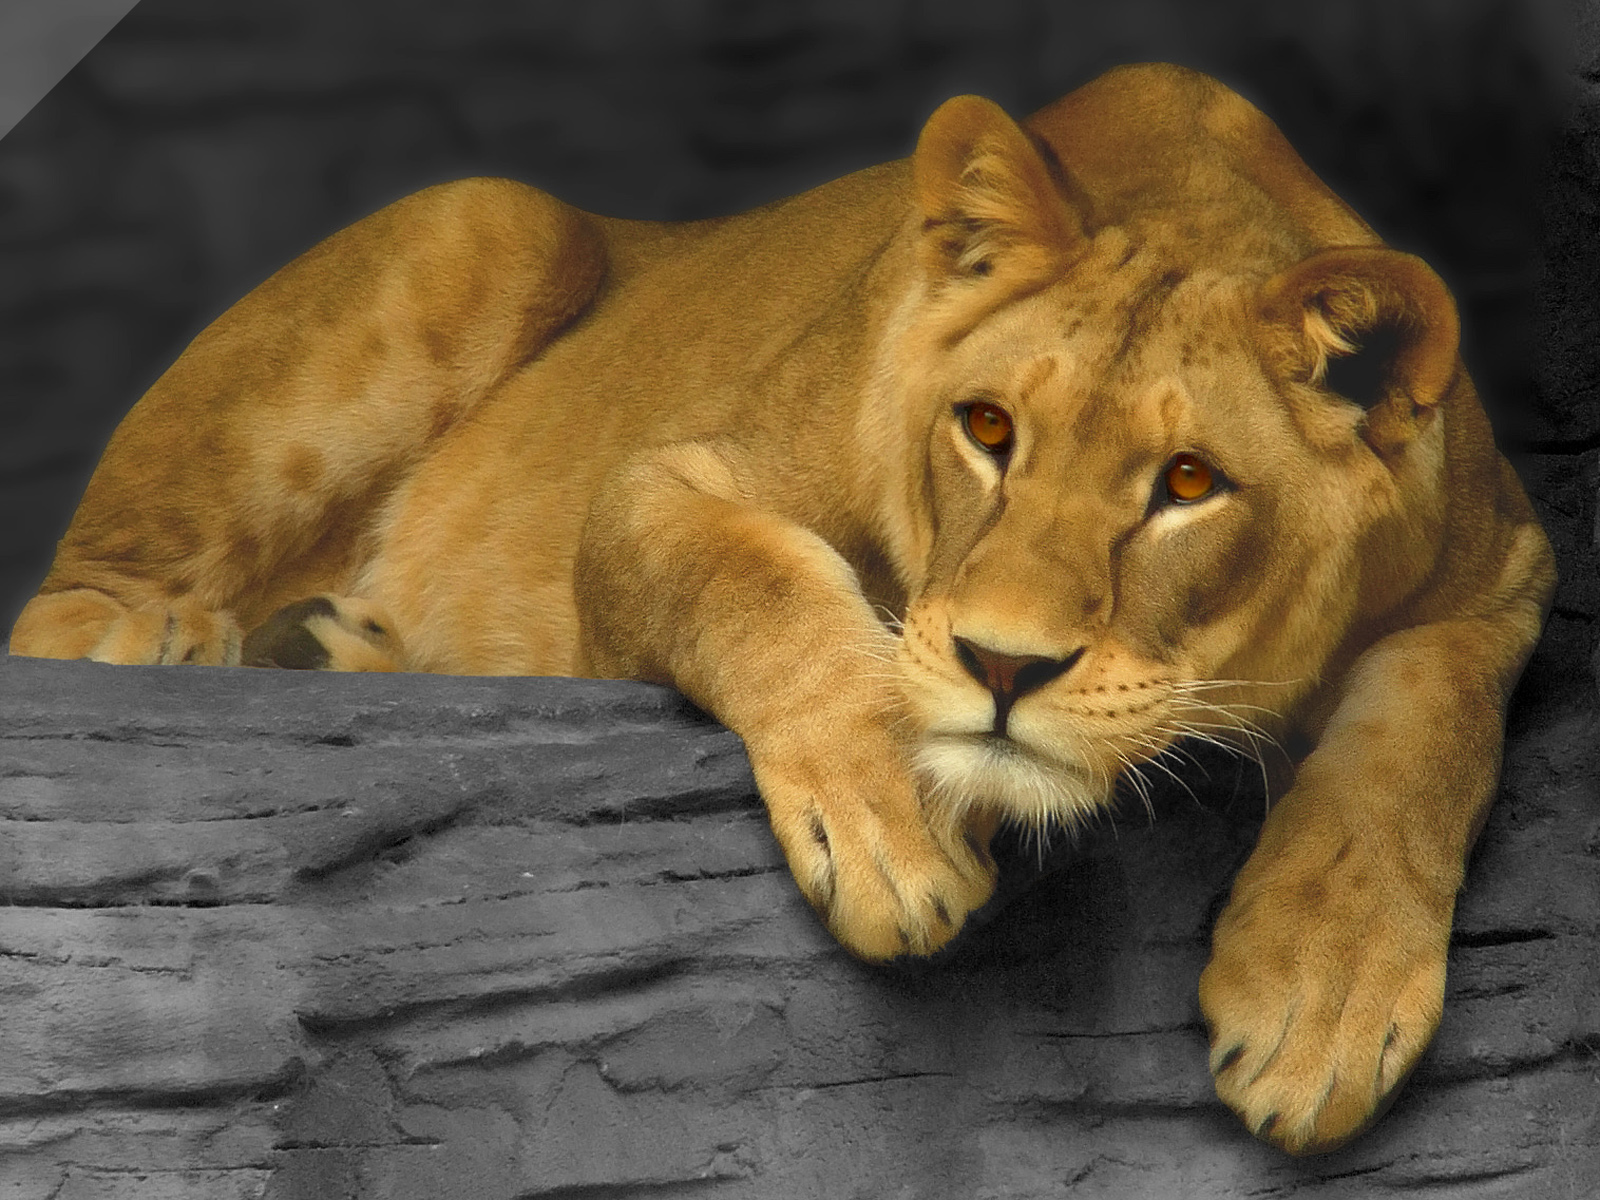 http://upload.wikimedia.org/wikipedia/commons/1/13/Lioness_updated.jpg